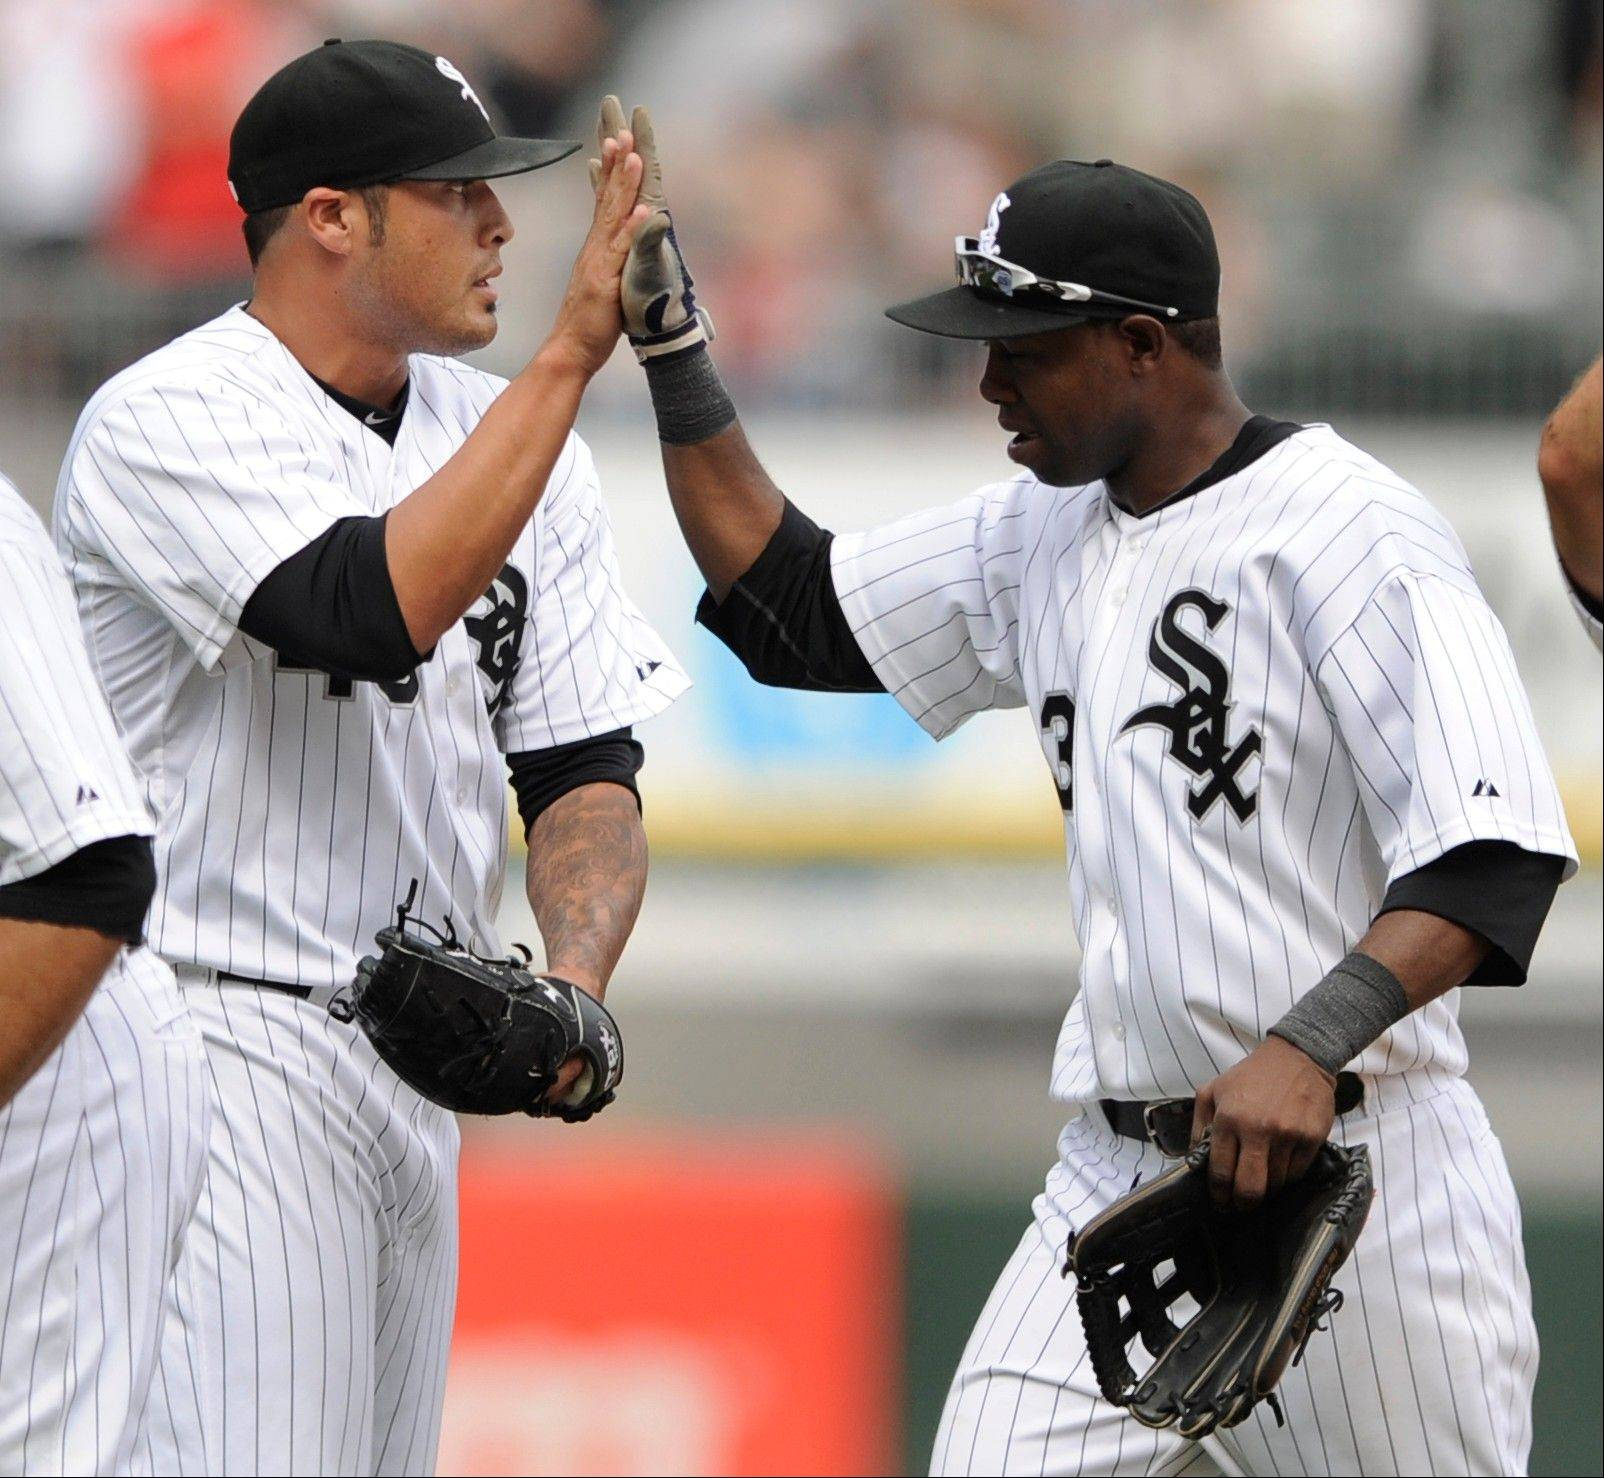 Chicago White Sox closing pitcher Sergio Santos left, celebrates with teammate Alejandro De Aza after defeating the Detroit Tigers 2-1 Wednesday at U.S. Cellular Field.